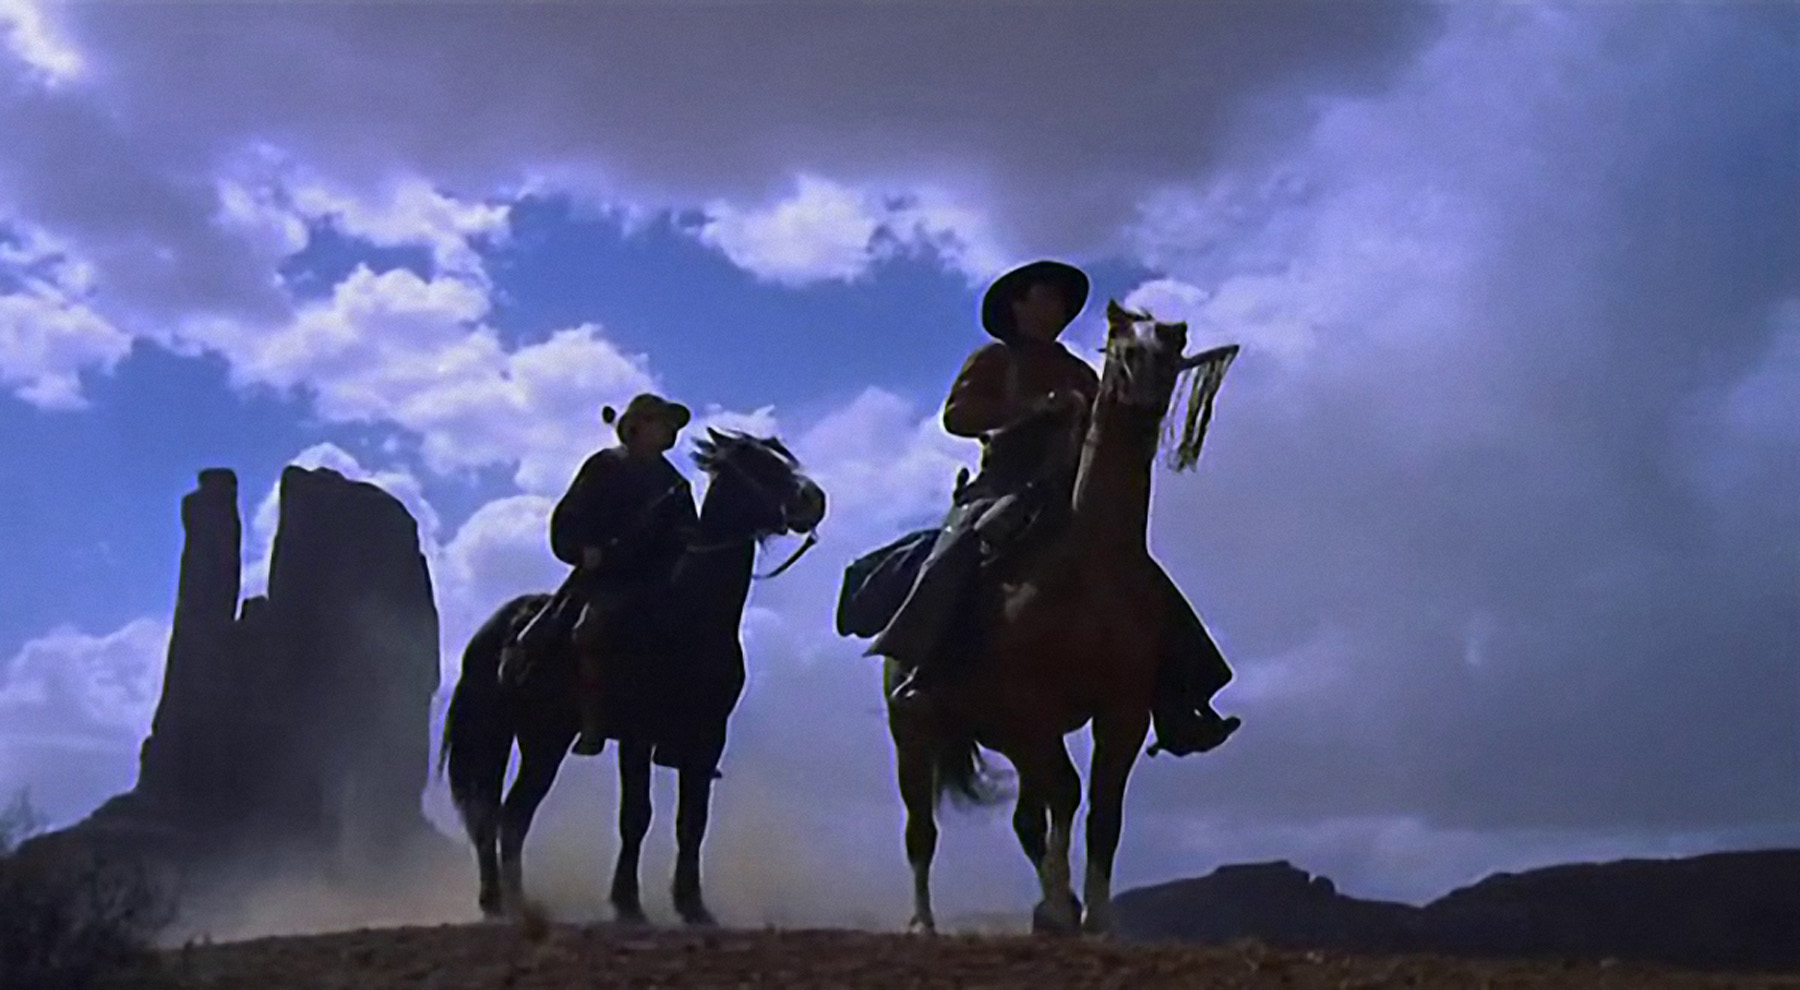 A still from The Searchers, 1956.